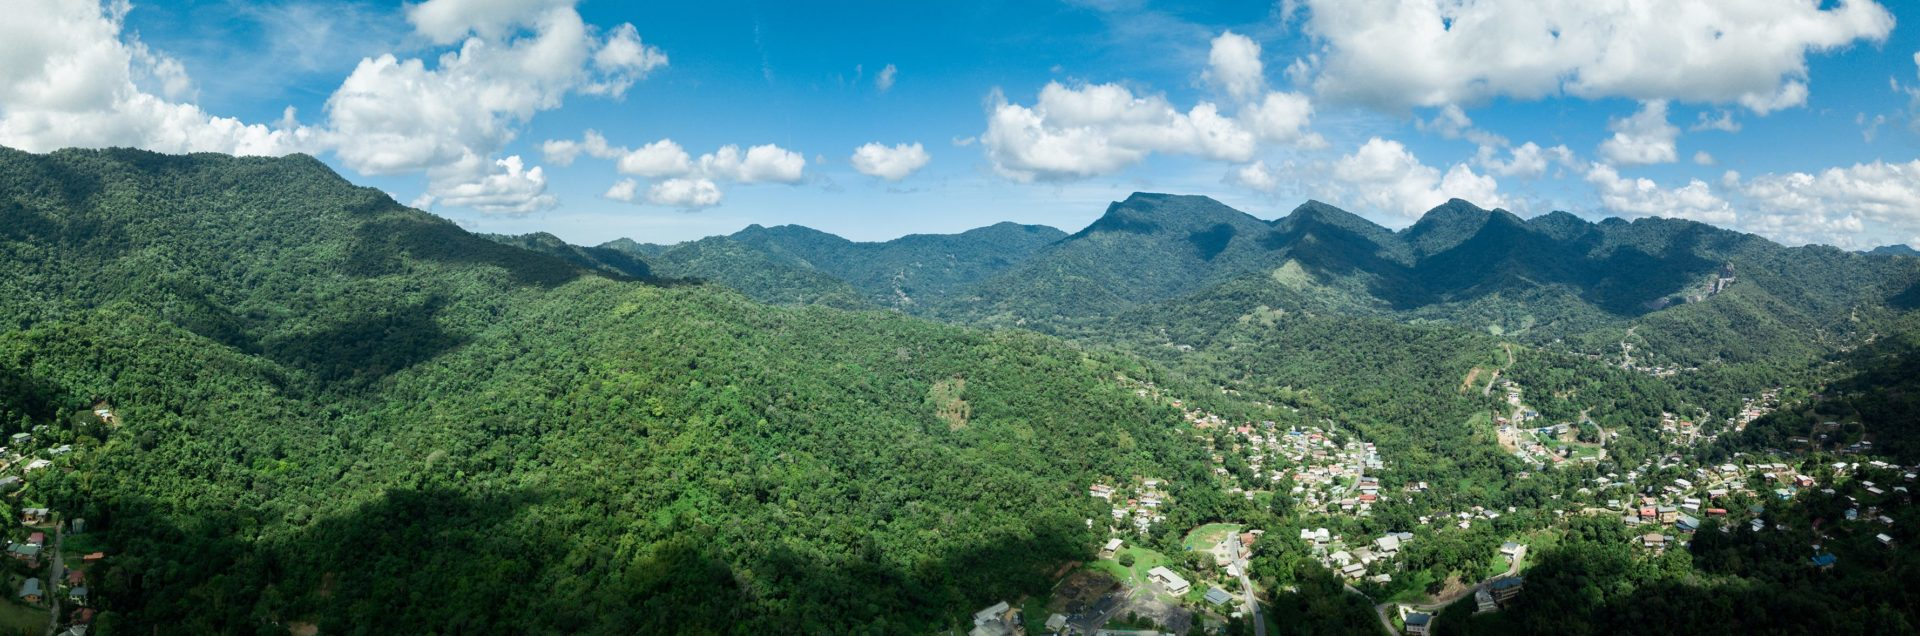 LAND FOR SALE AT EXCLUSIVE GATED PROPERTY IN MARACAS, ST JOSEPH